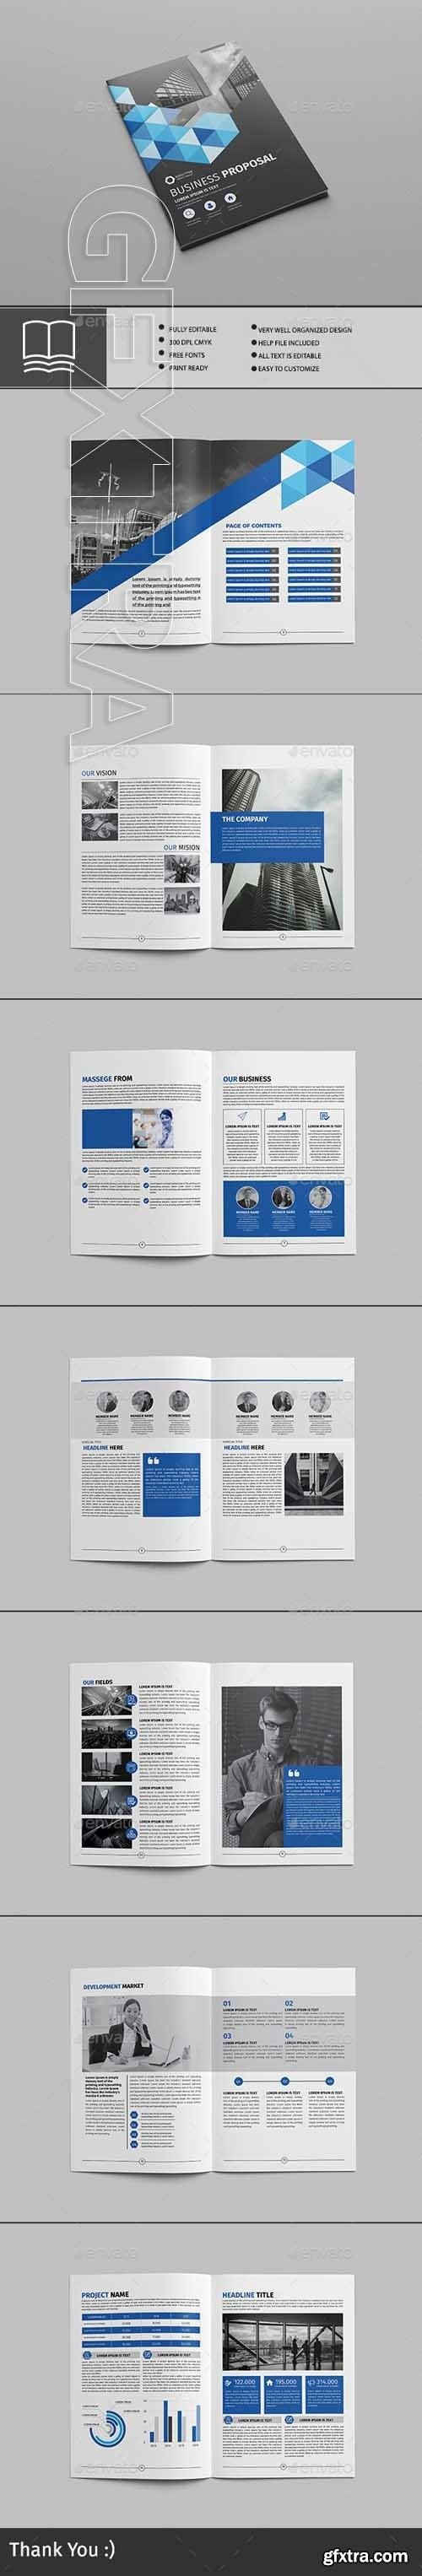 GraphicRiver - Business proposal 20580754